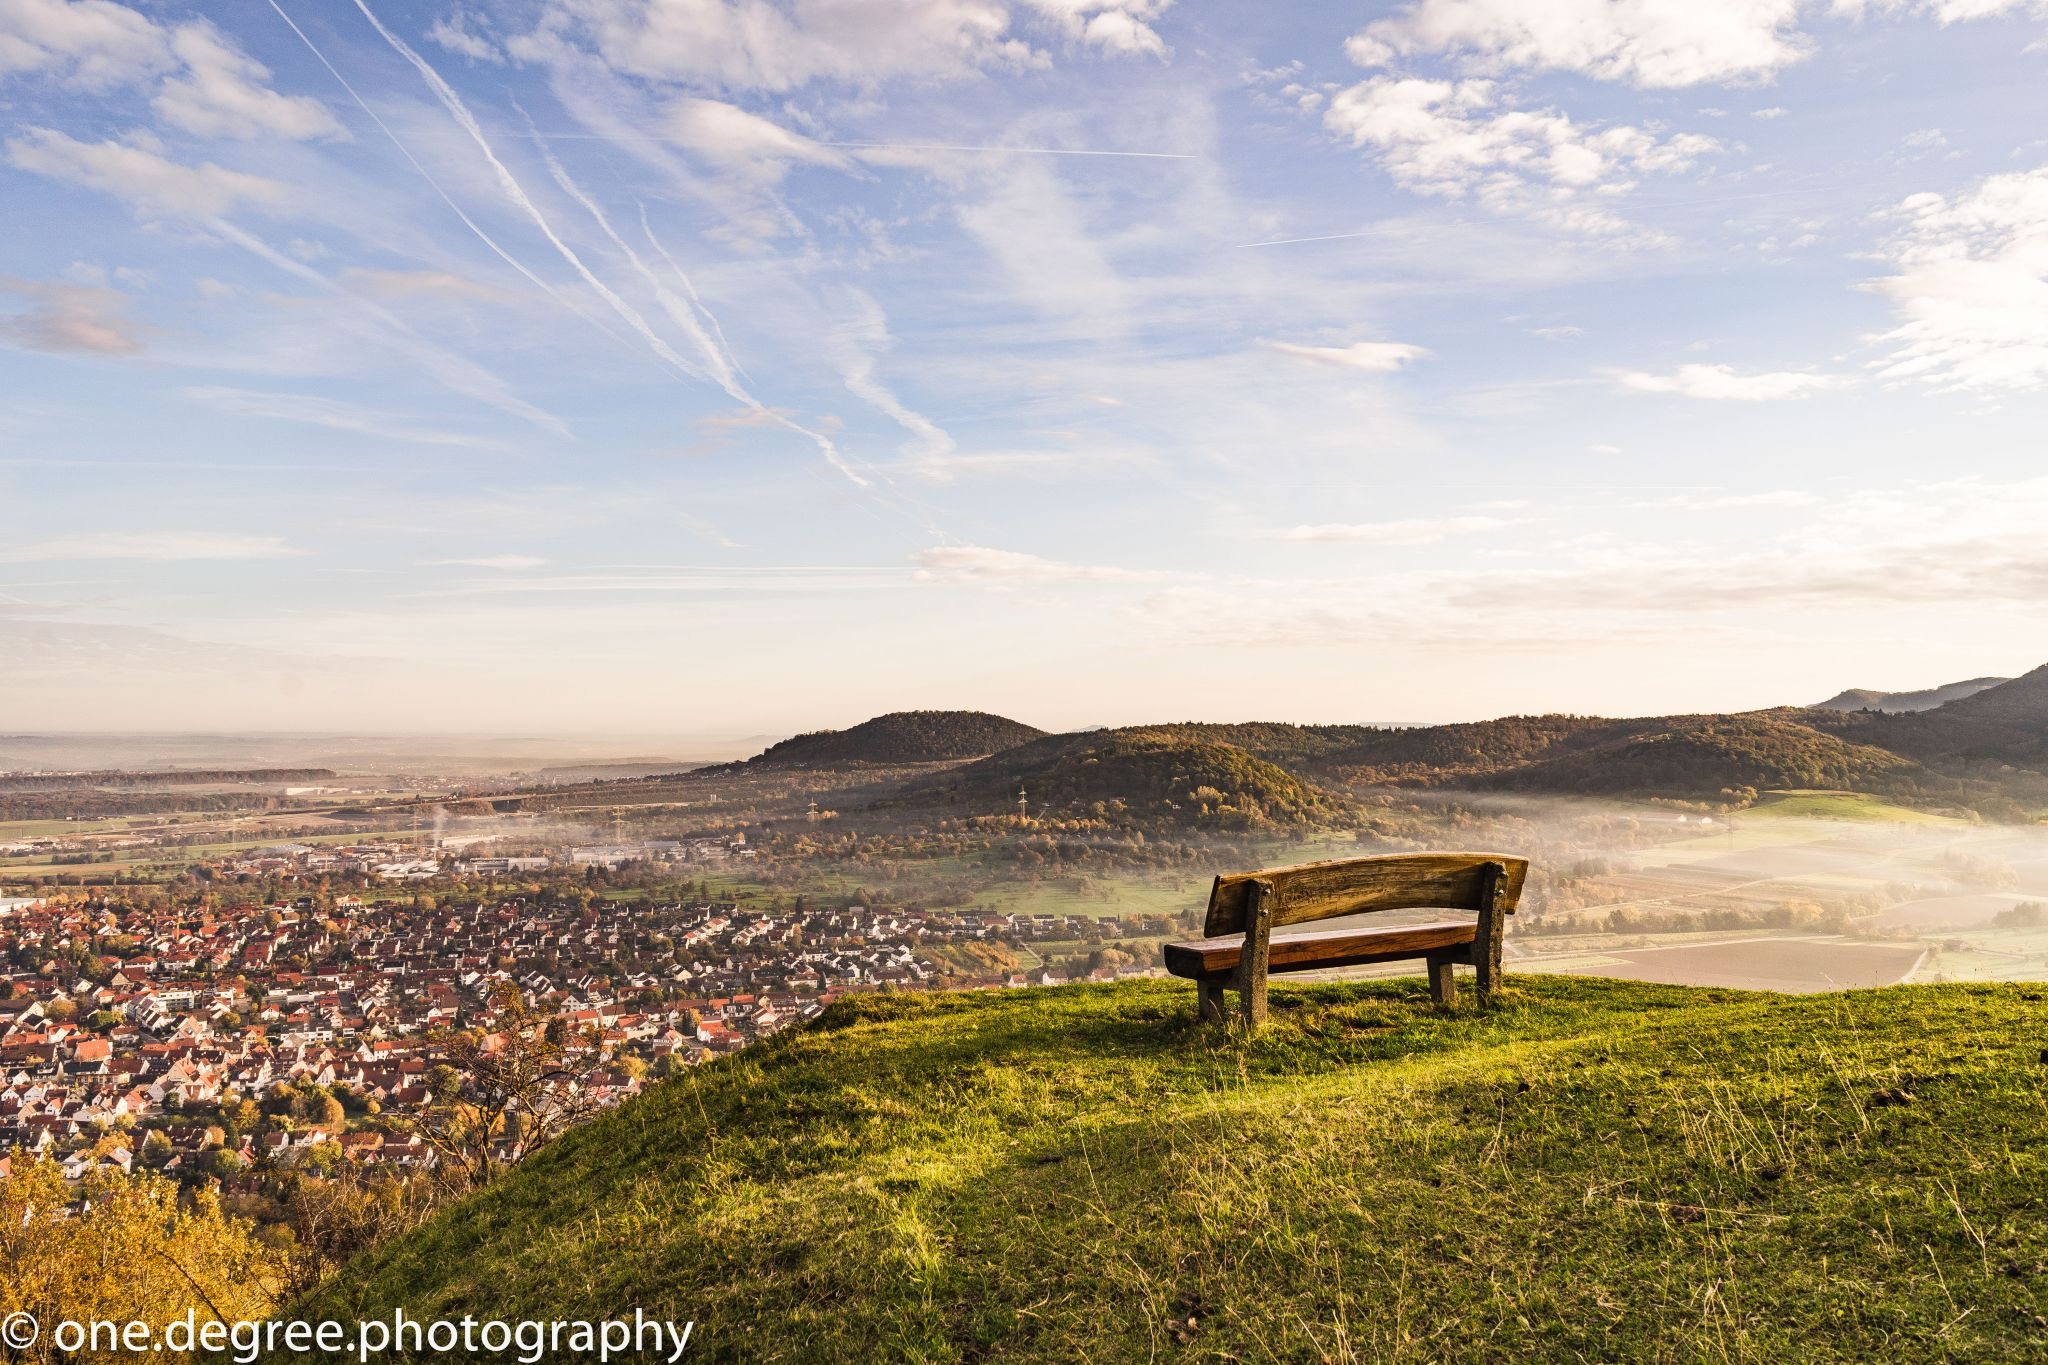 Bench on top of the hill, Germany